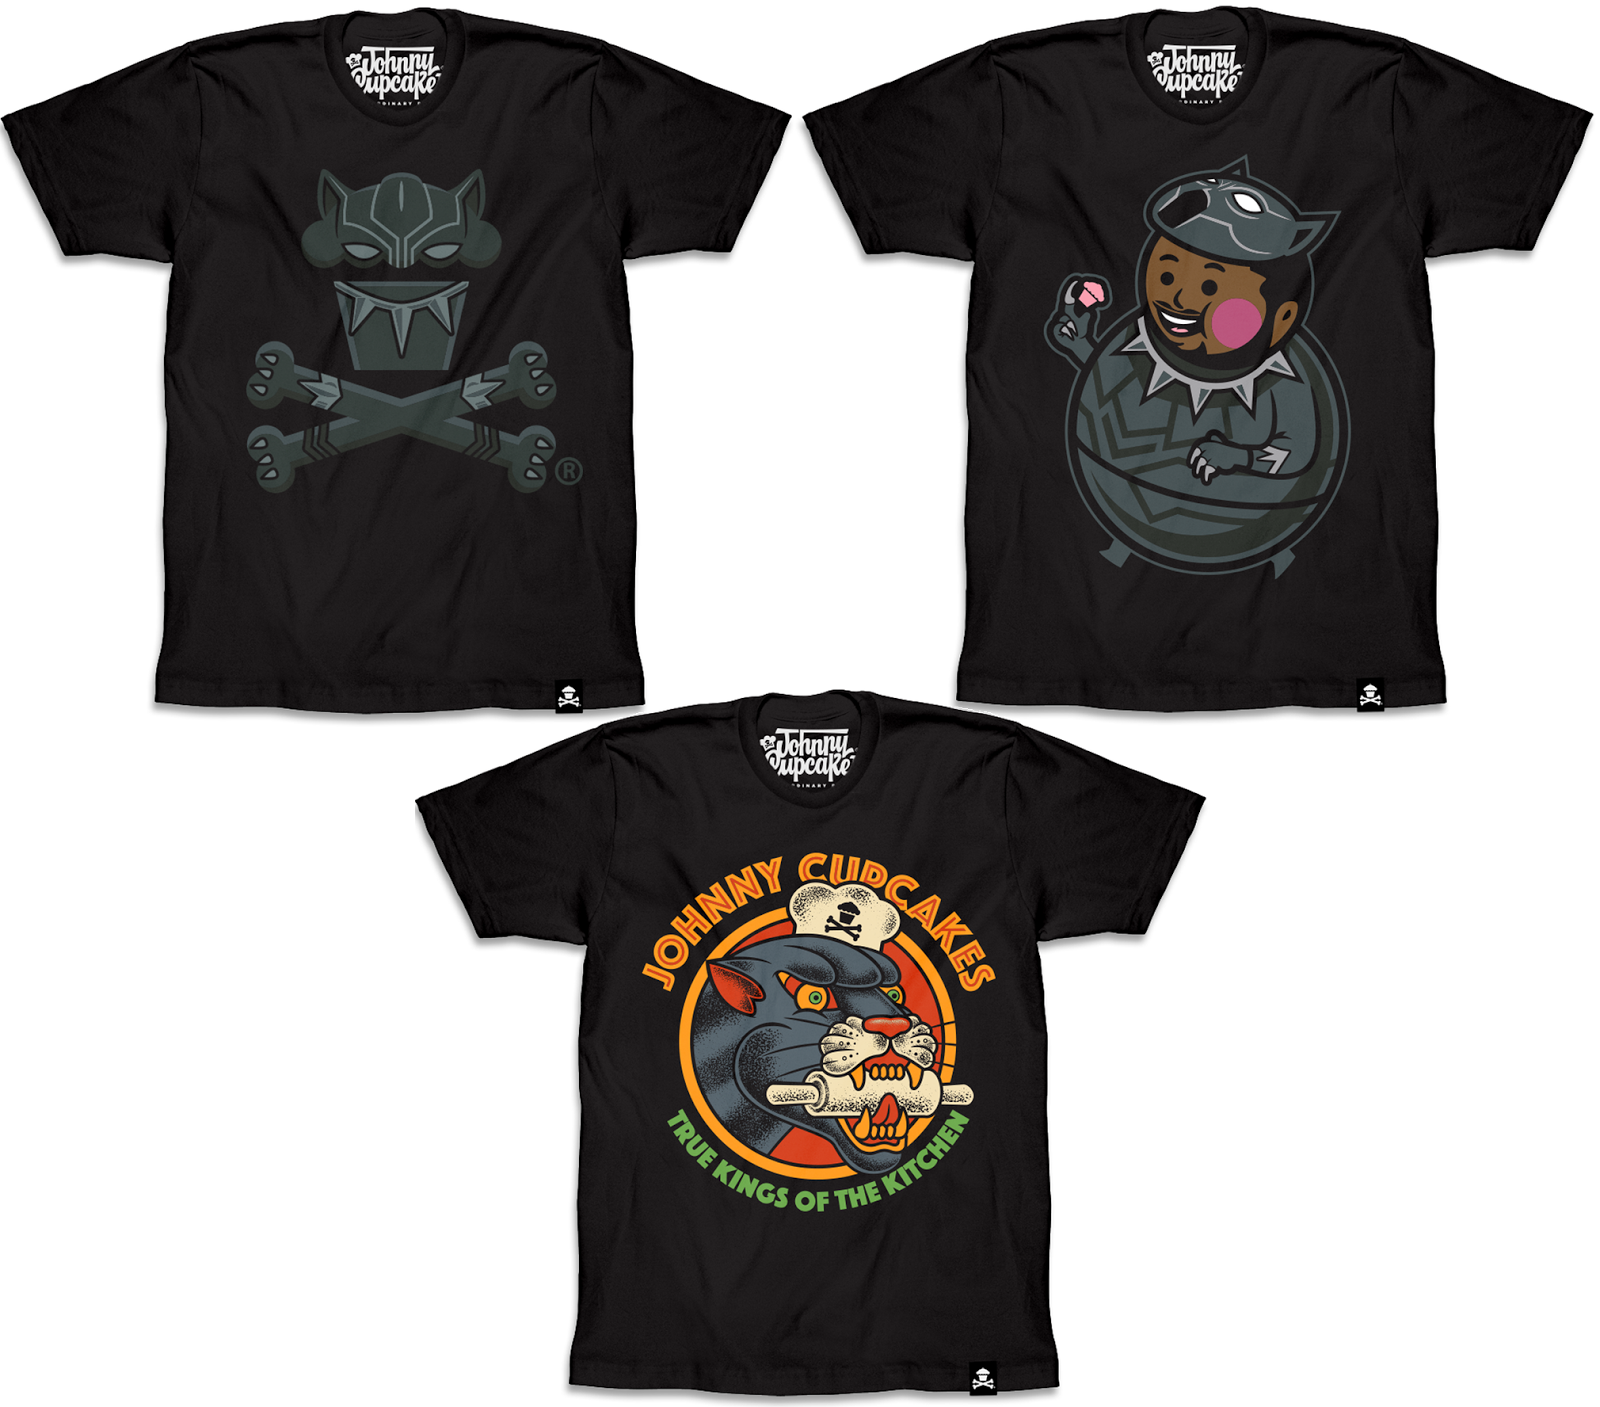 e55e15a5e The Blot Says...: Marvel's Black Panther T-Shirt Collection by ...